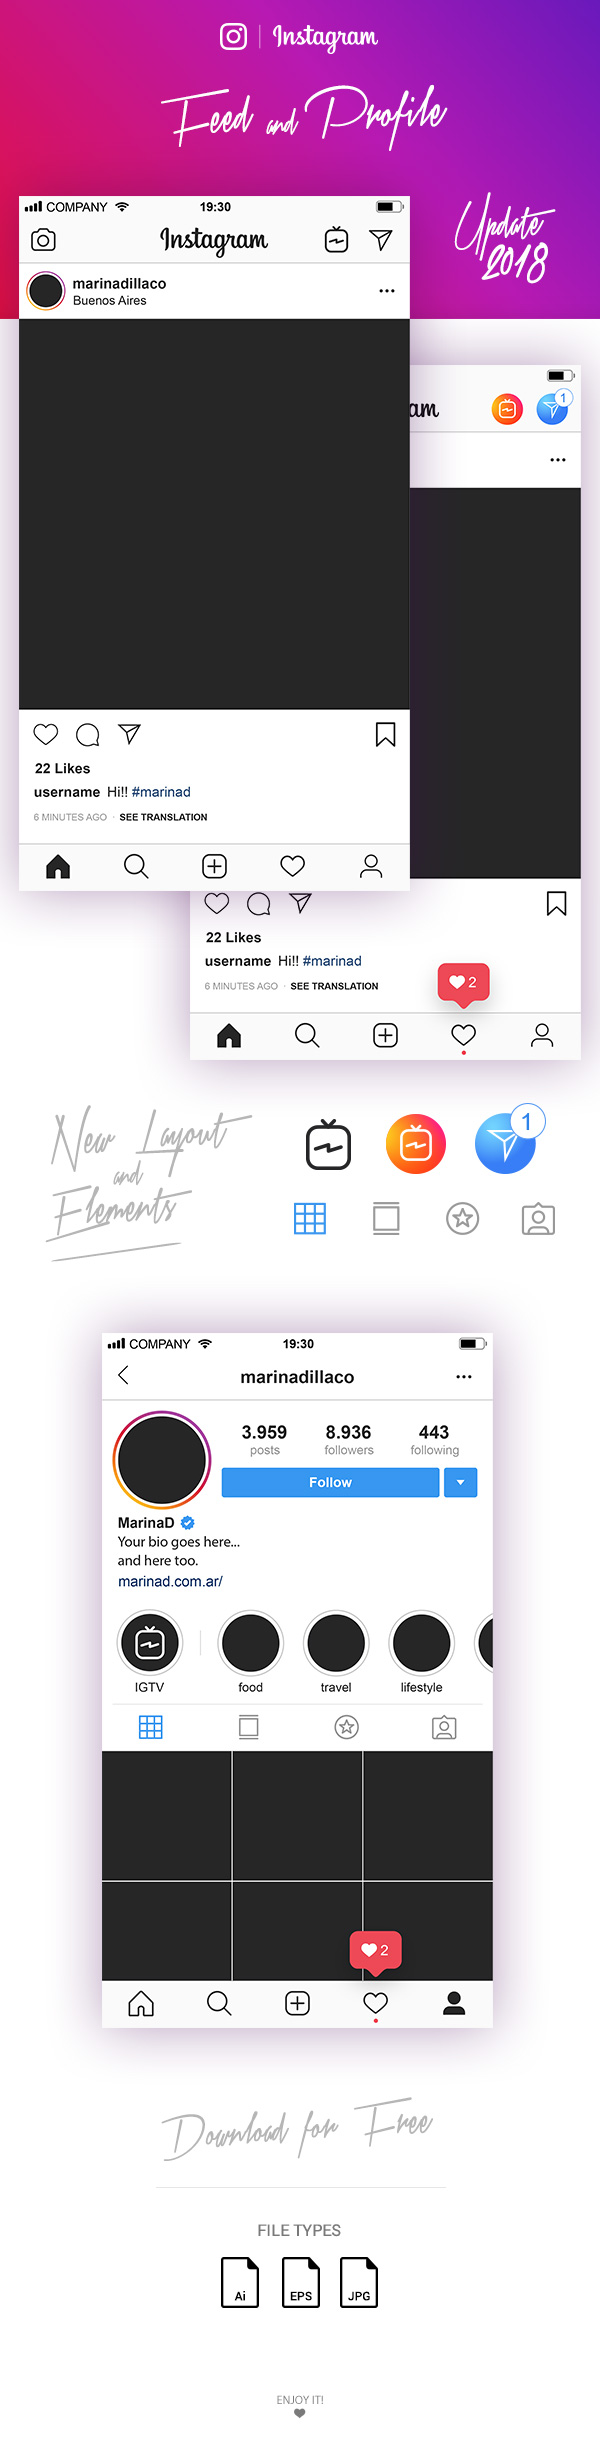 FREE Instagram Layout Feed and Profile UI - 2018 - MarinaD